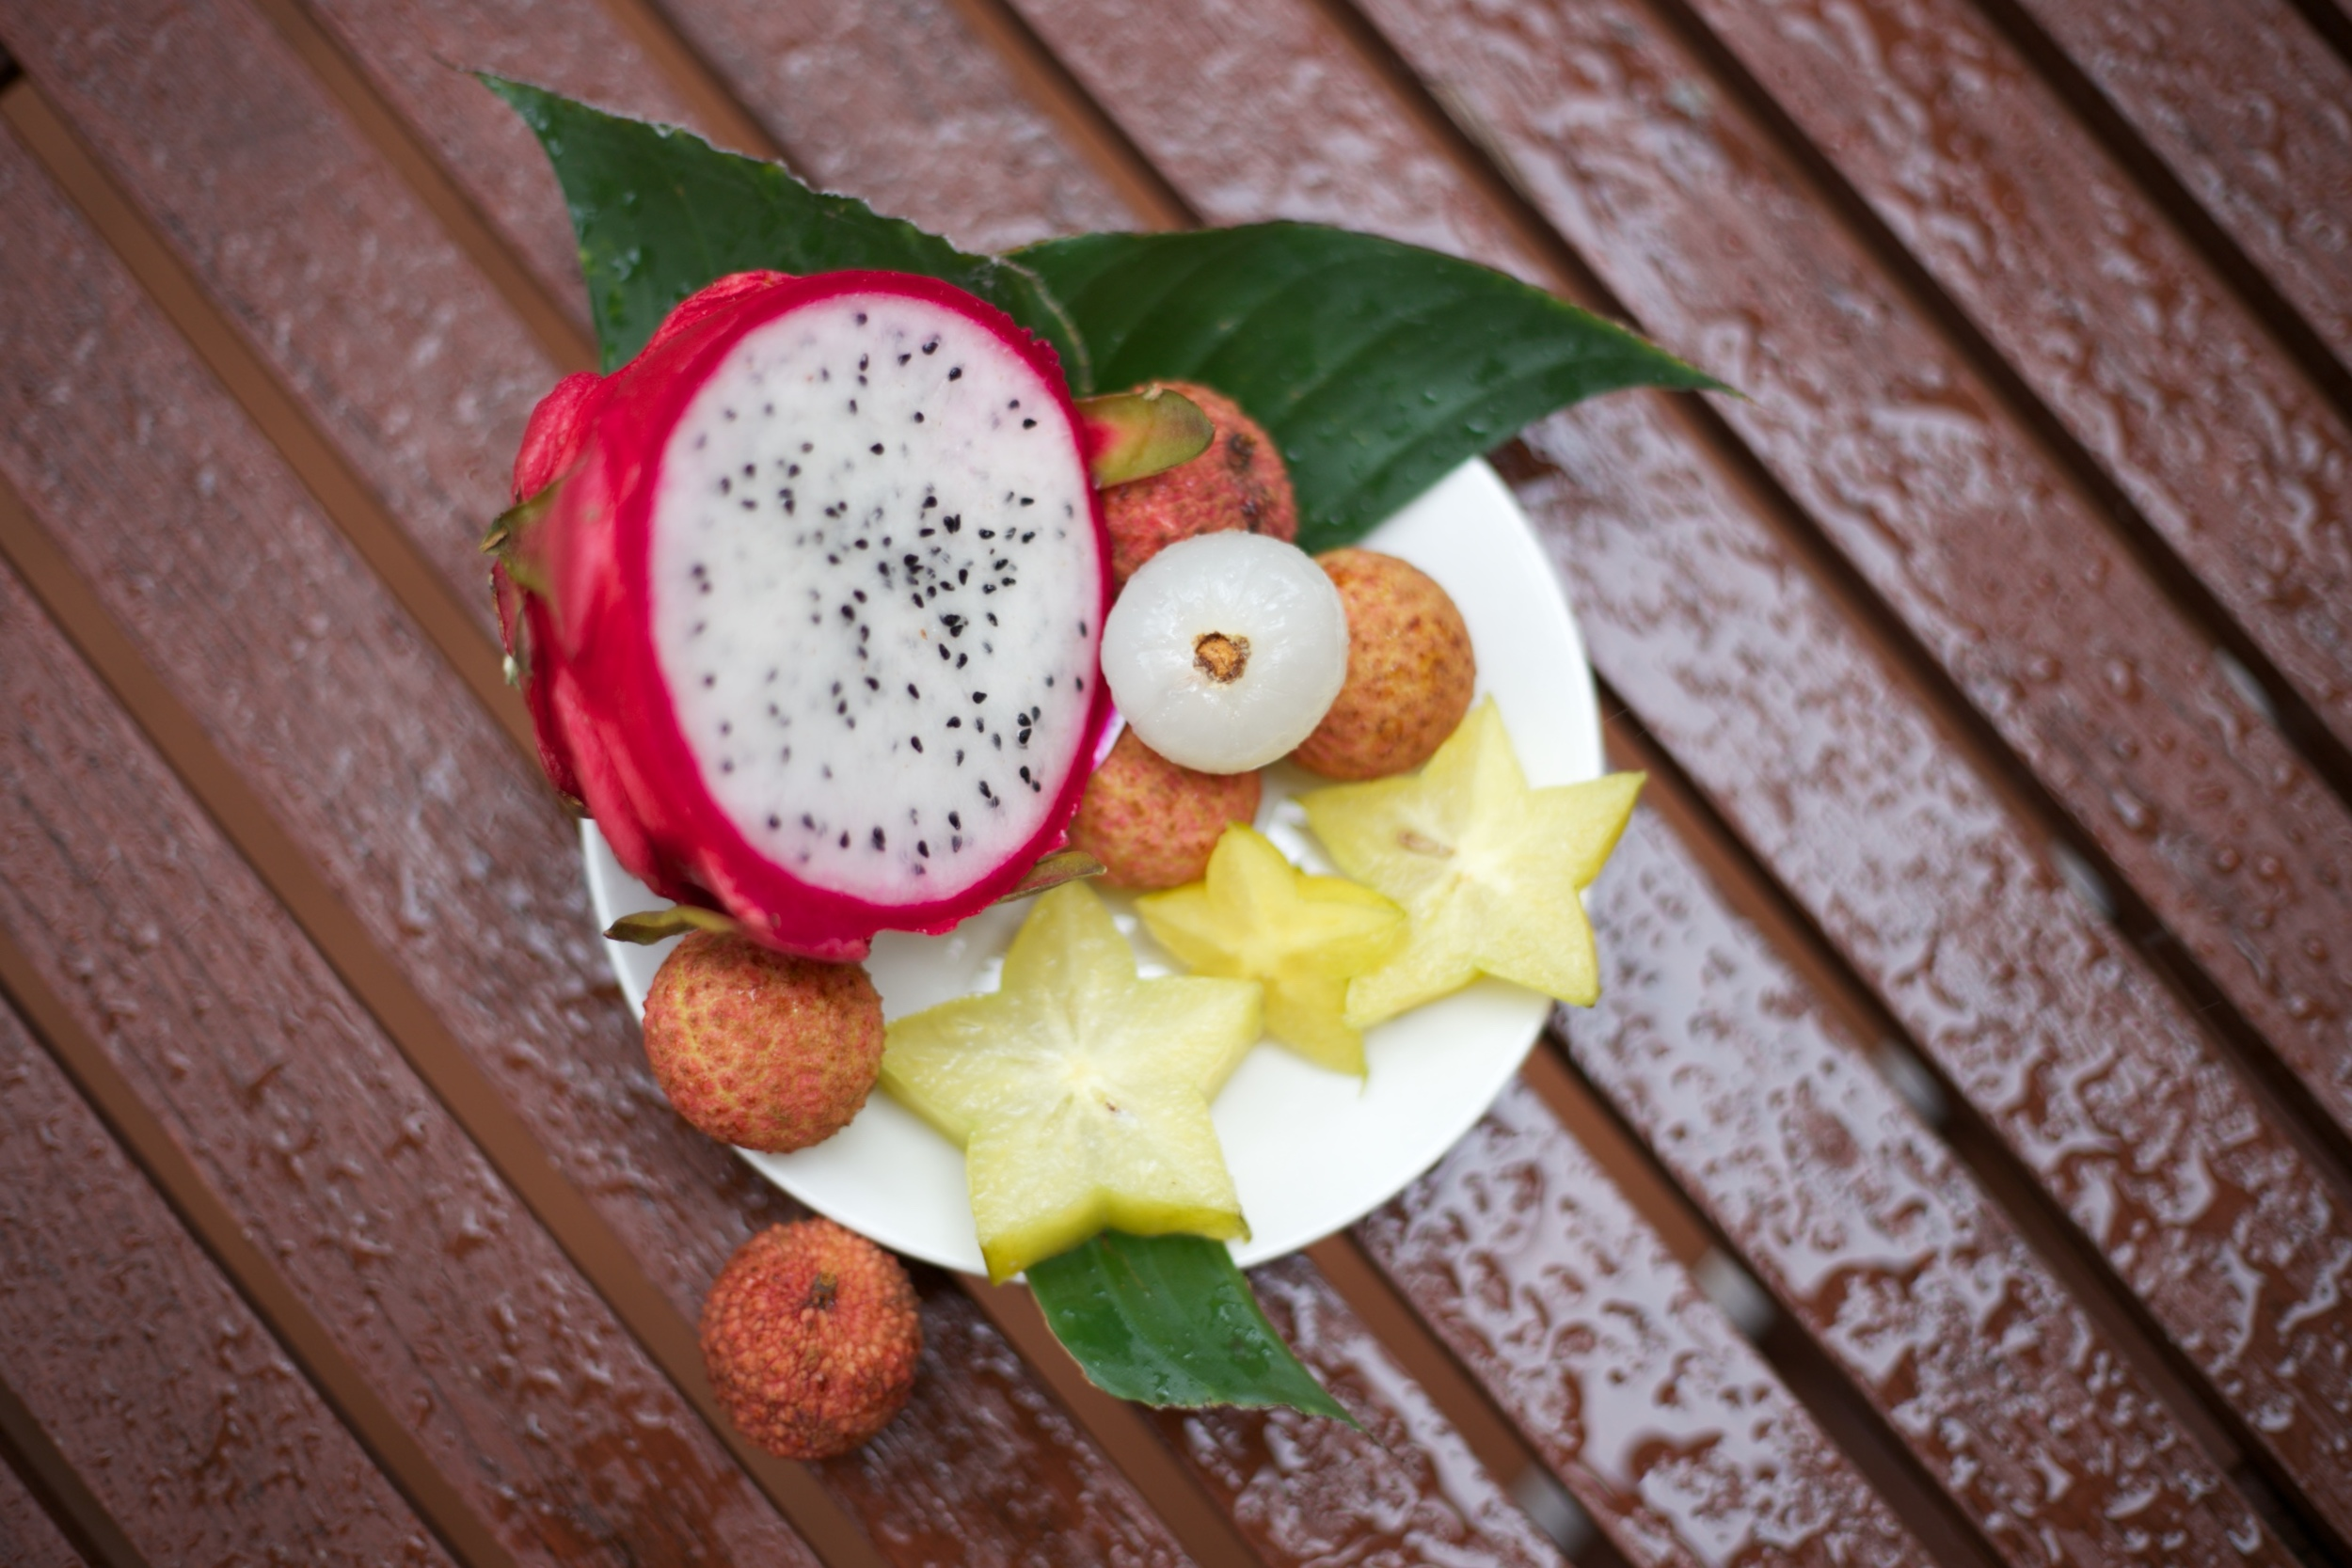 Tropical Australian fruit - dragon fruit, fresh lychees and star fruit.